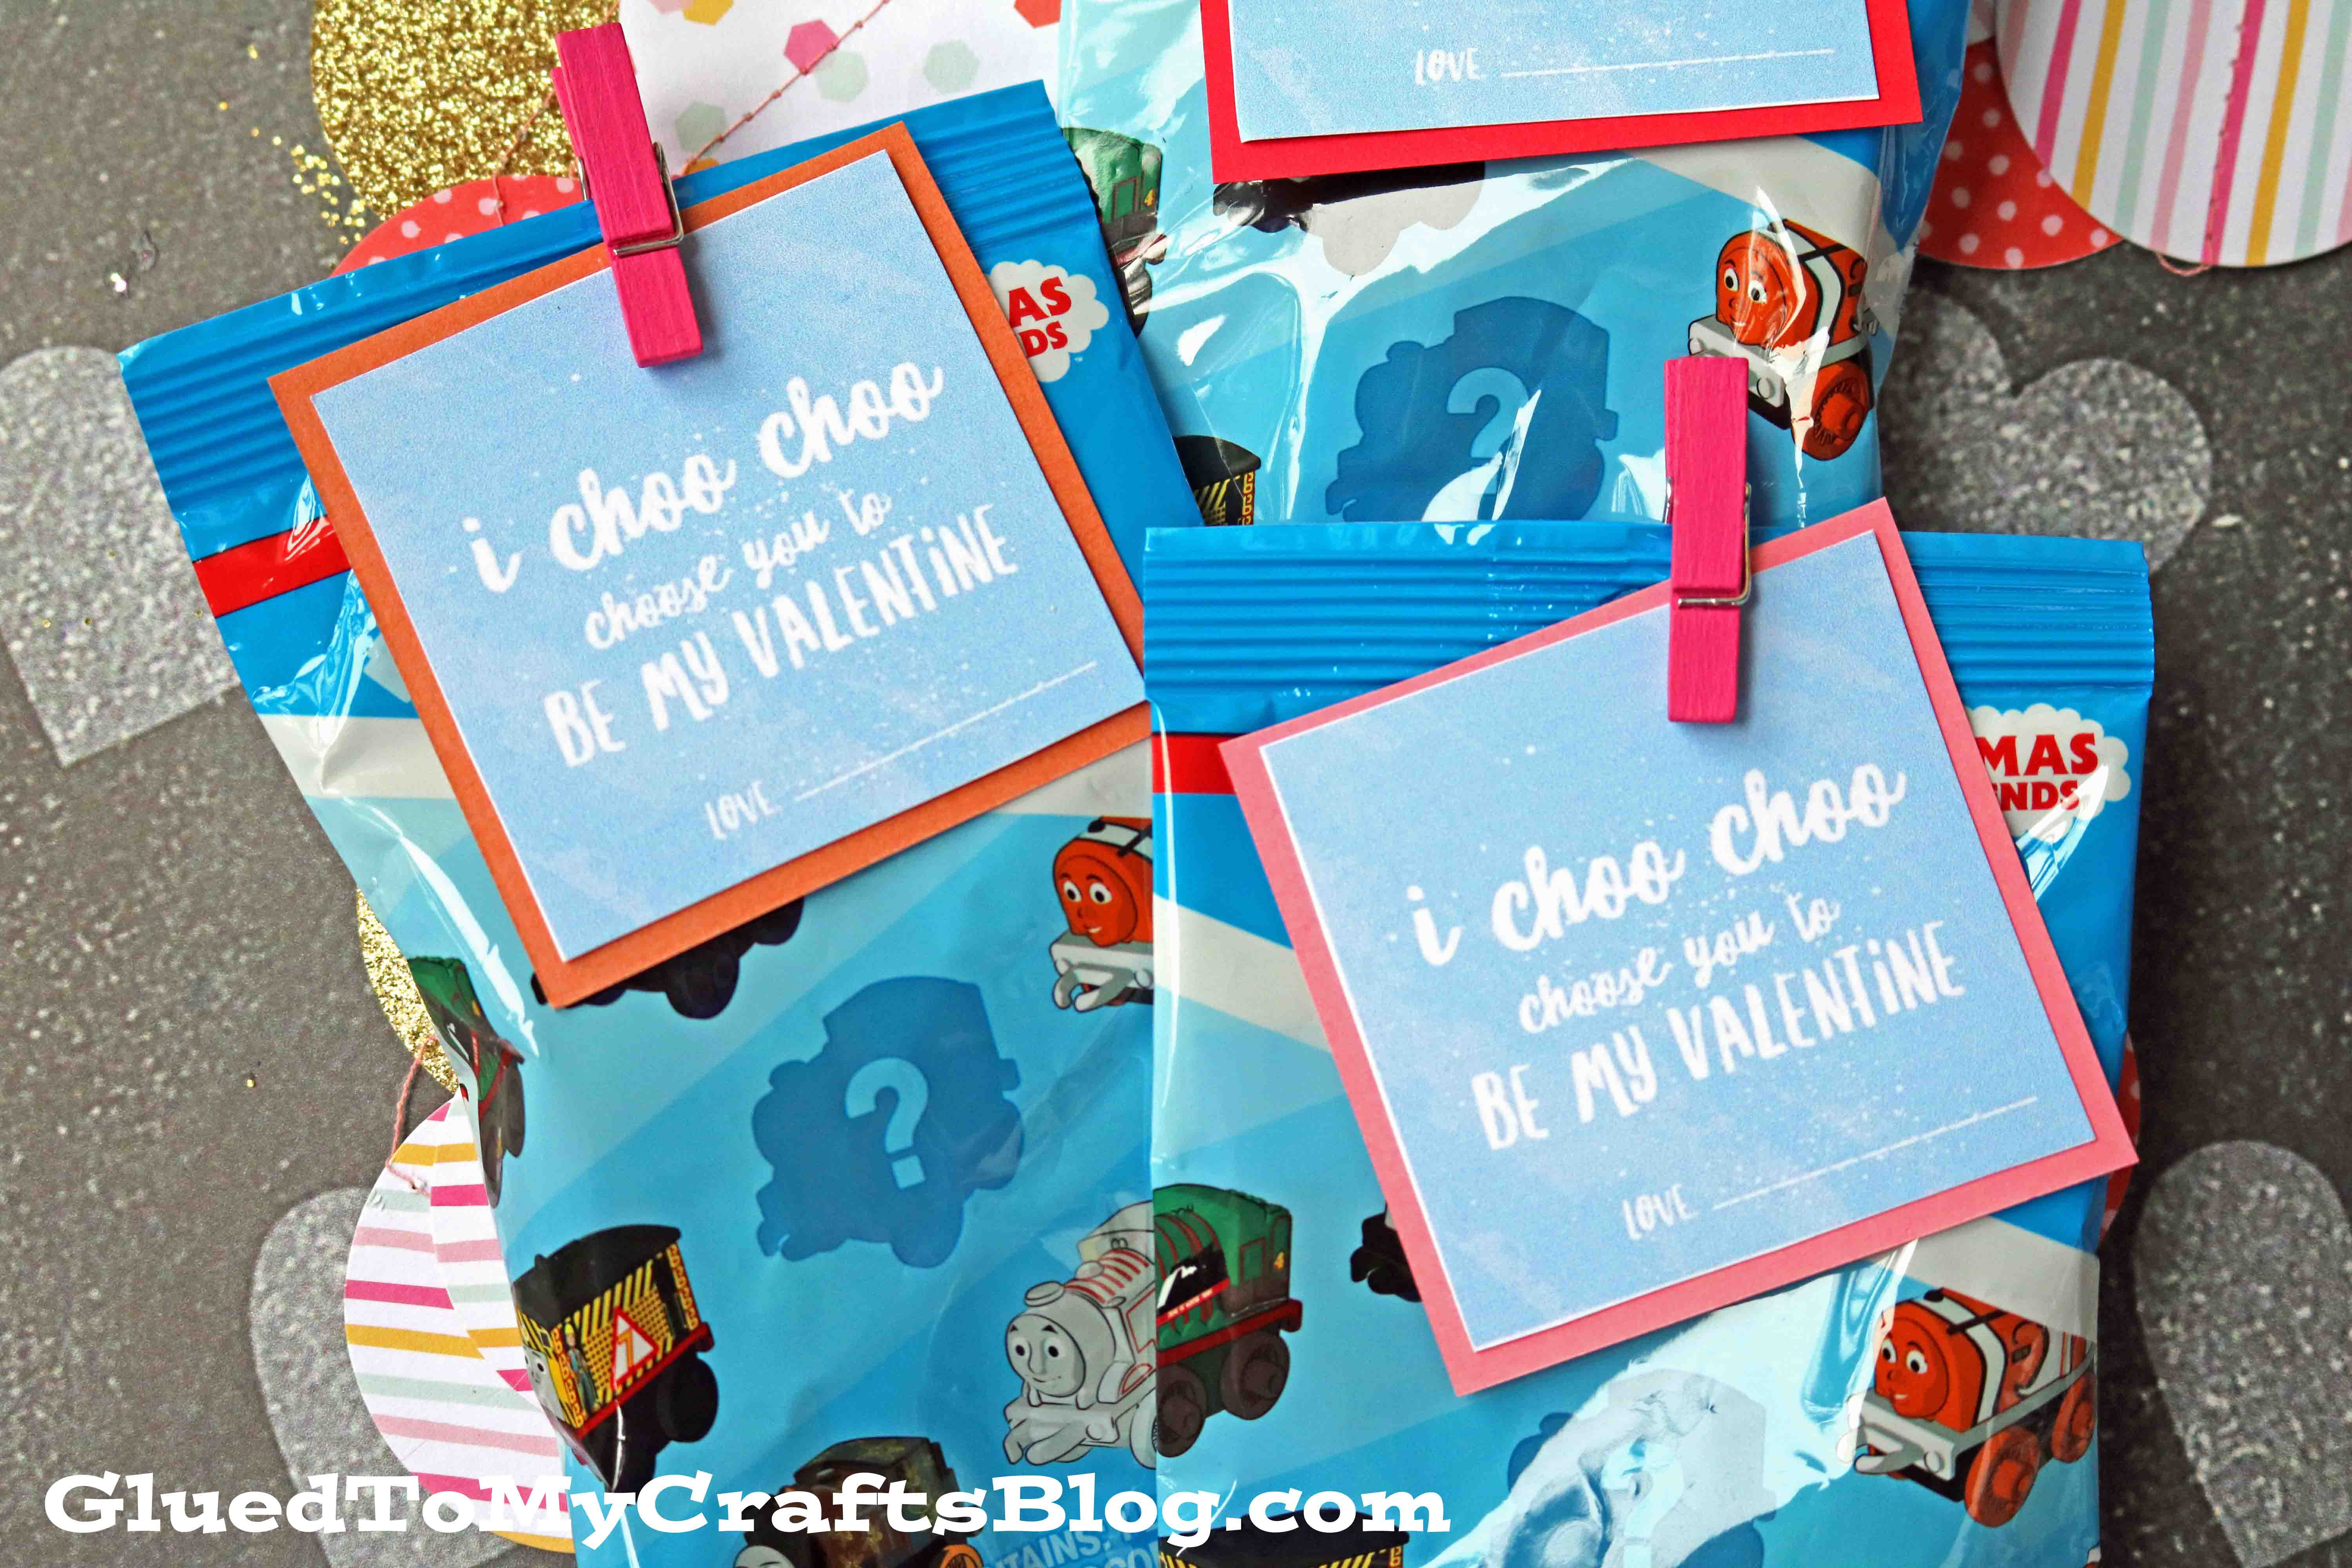 picture about I Choo Choo Choose You Printable Card called Valentine Prepare Favors - I CHOO CHOO Select By yourself Printable